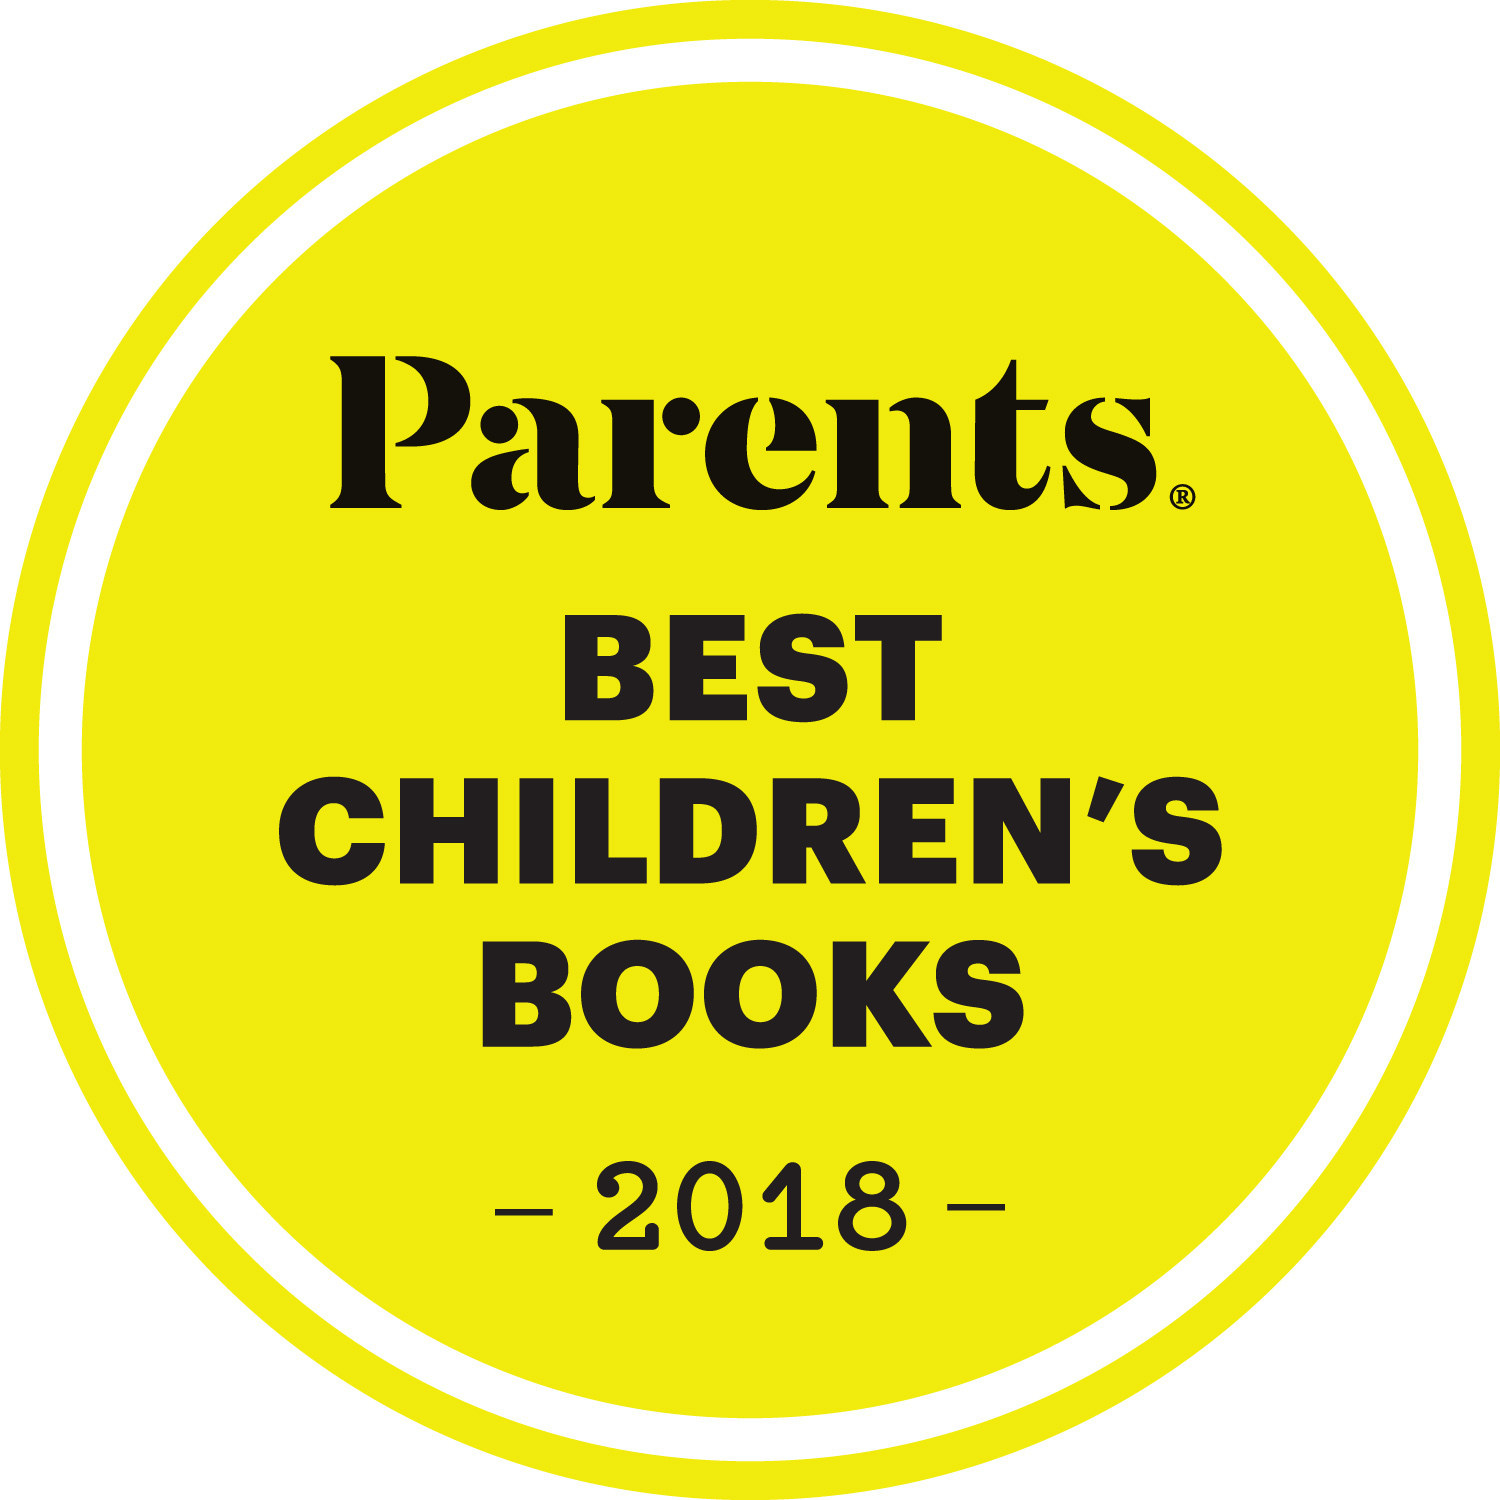 Parents Announces 10th Annual Best Children's Books List